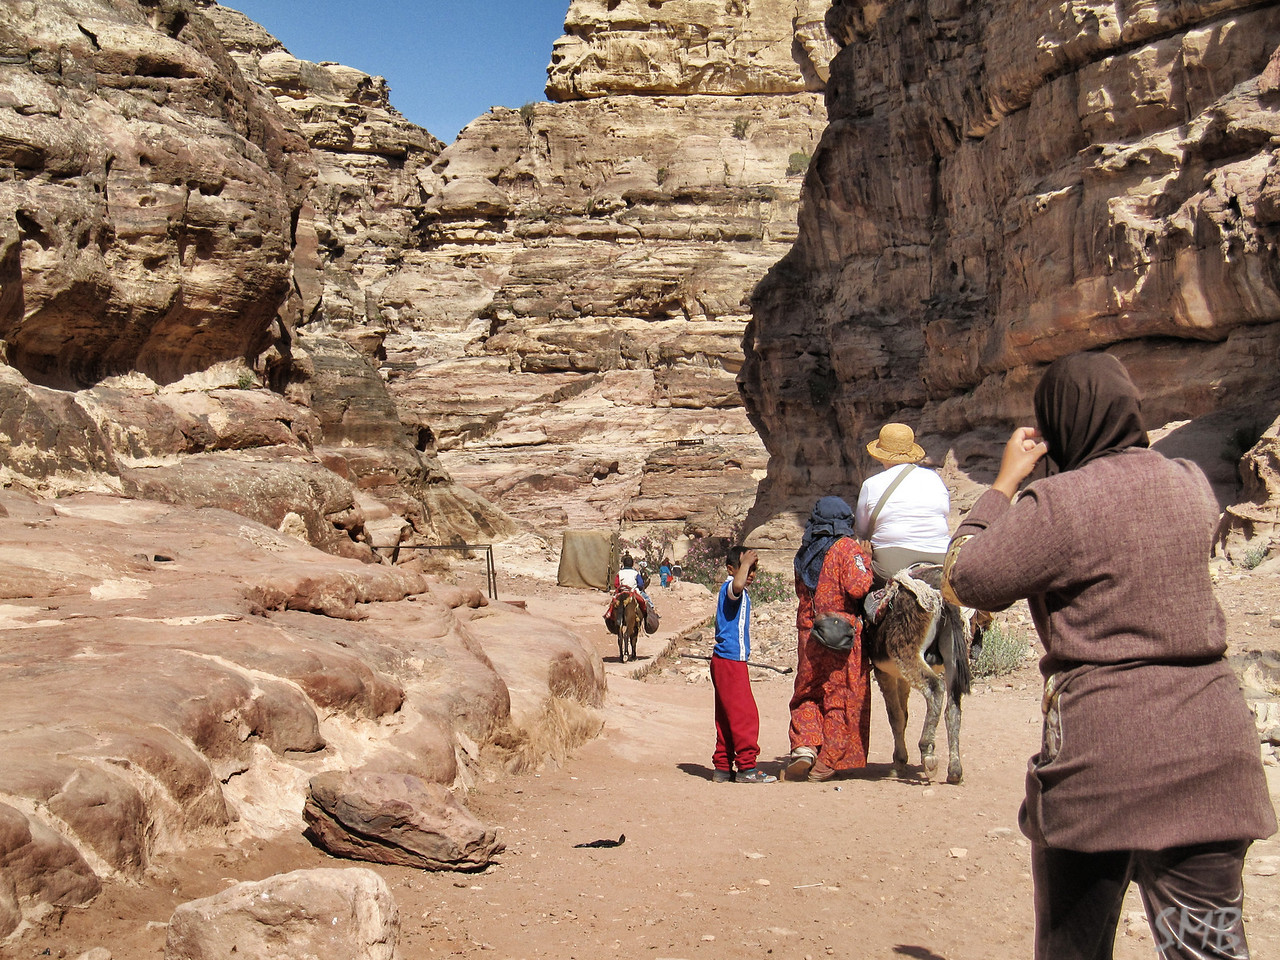 And off she goes on her donkey!!<br /> <br /> Petra, Jordan